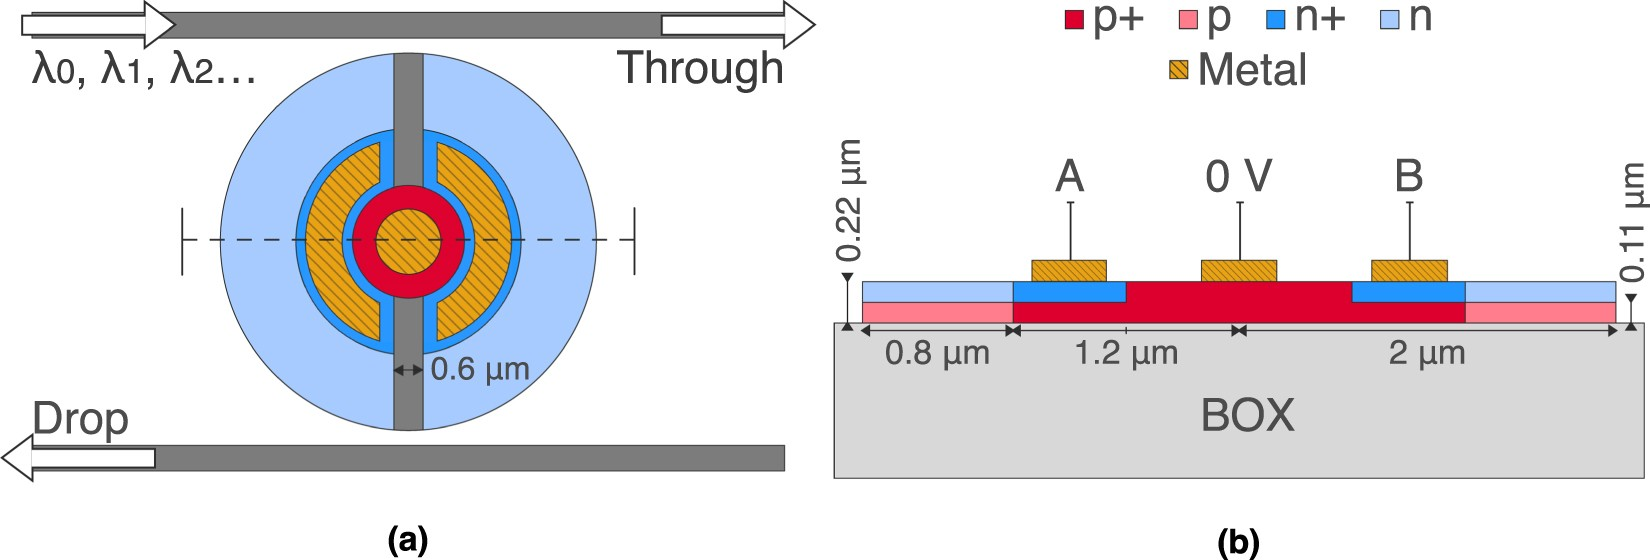 Ultracompact Cmos Compatible Optical Logic Using Carrier Depletion Basic Halfadder And Fulladder Circuits The Rightclick Menu Of In Microdisk Resonators Scientific Reports